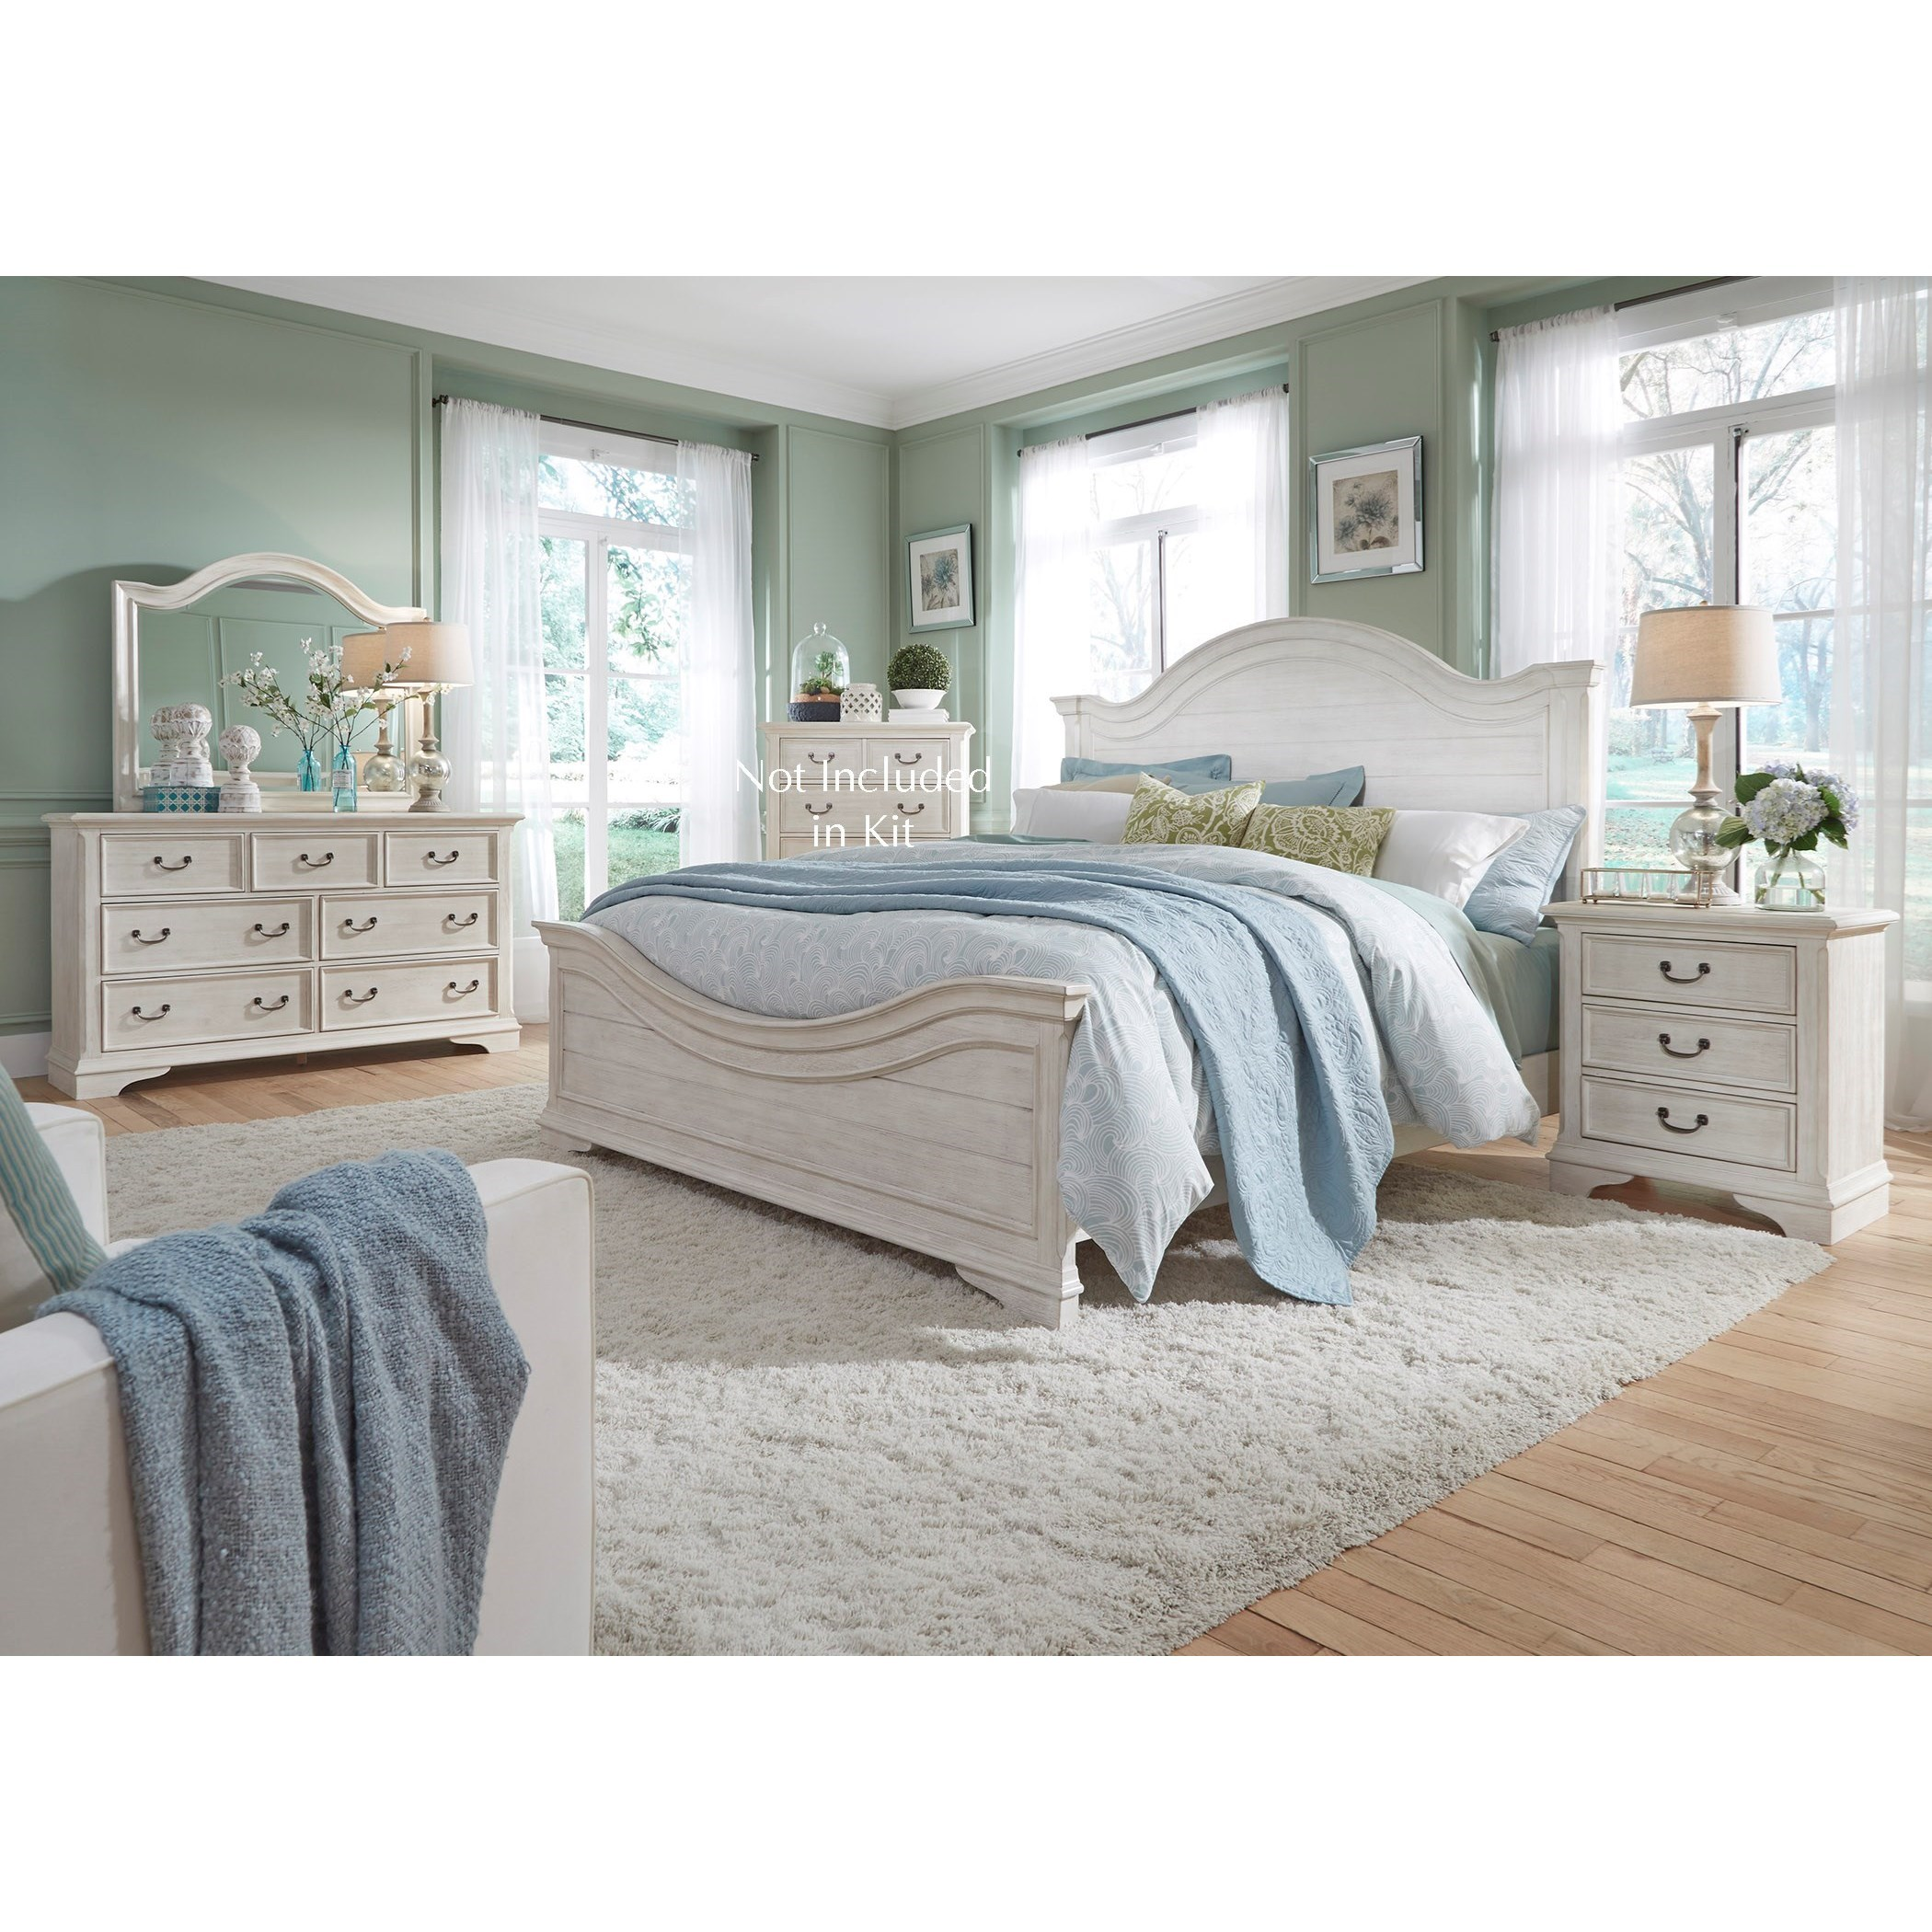 Bayside Bedroom Queen Bedroom Group by Liberty Furniture at Northeast Factory Direct